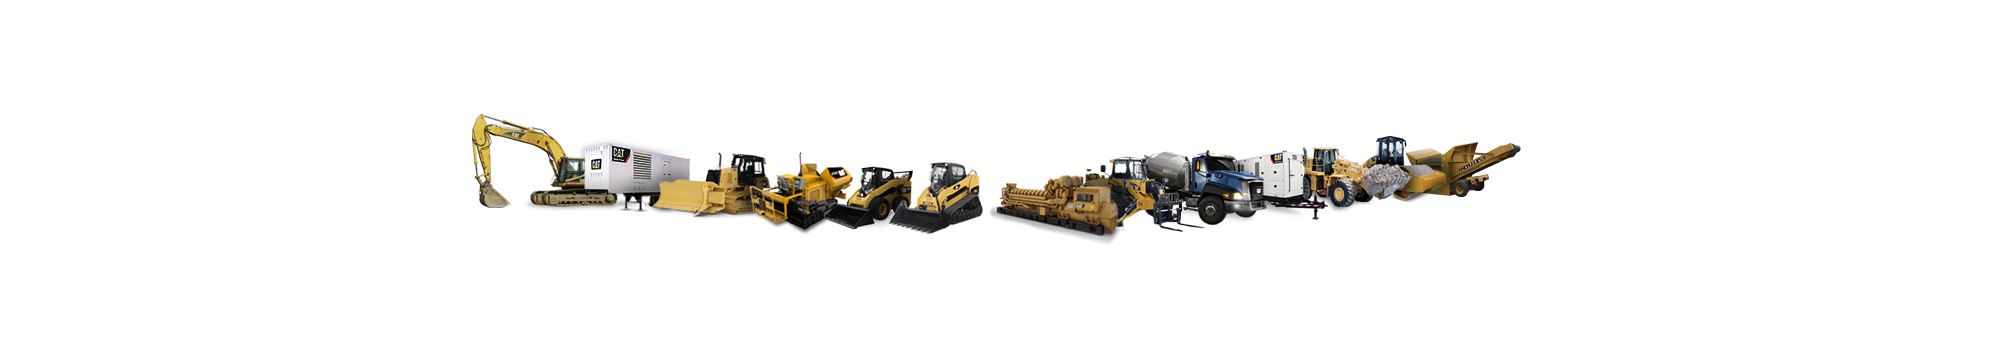 Heavy Equipment For Sale Amp Rent In New York Amp Connecticut